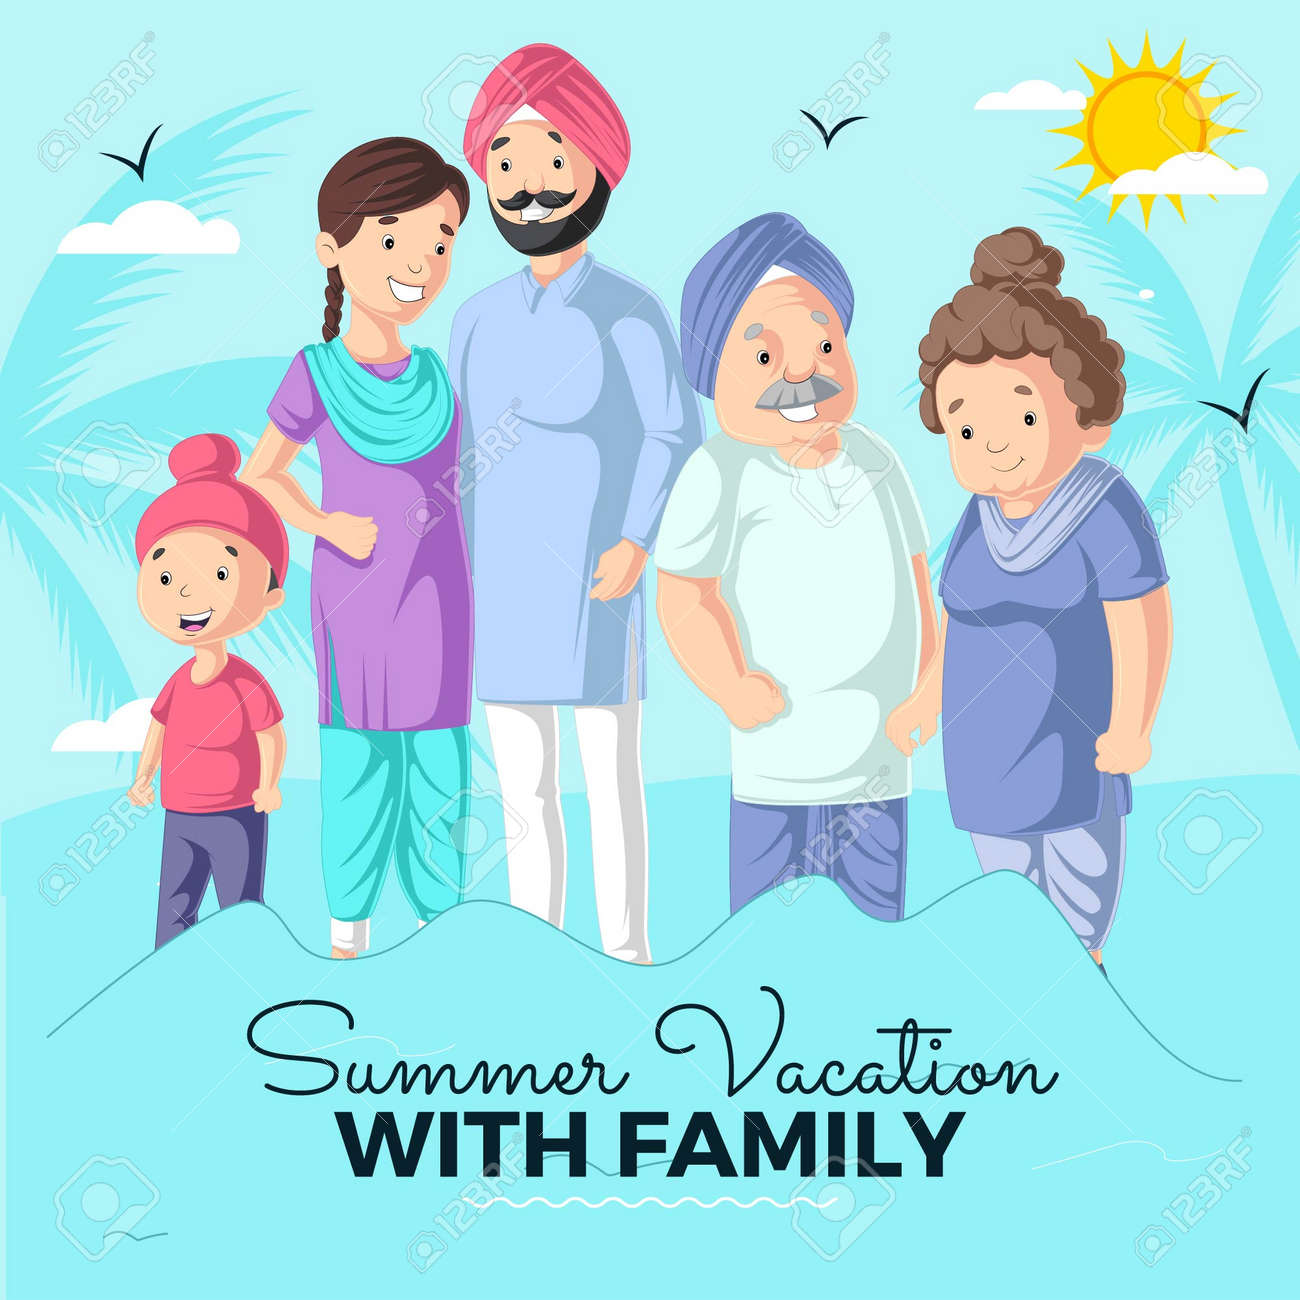 Summer vacation with family banner design template. Vector graphic illustration. - 171727325